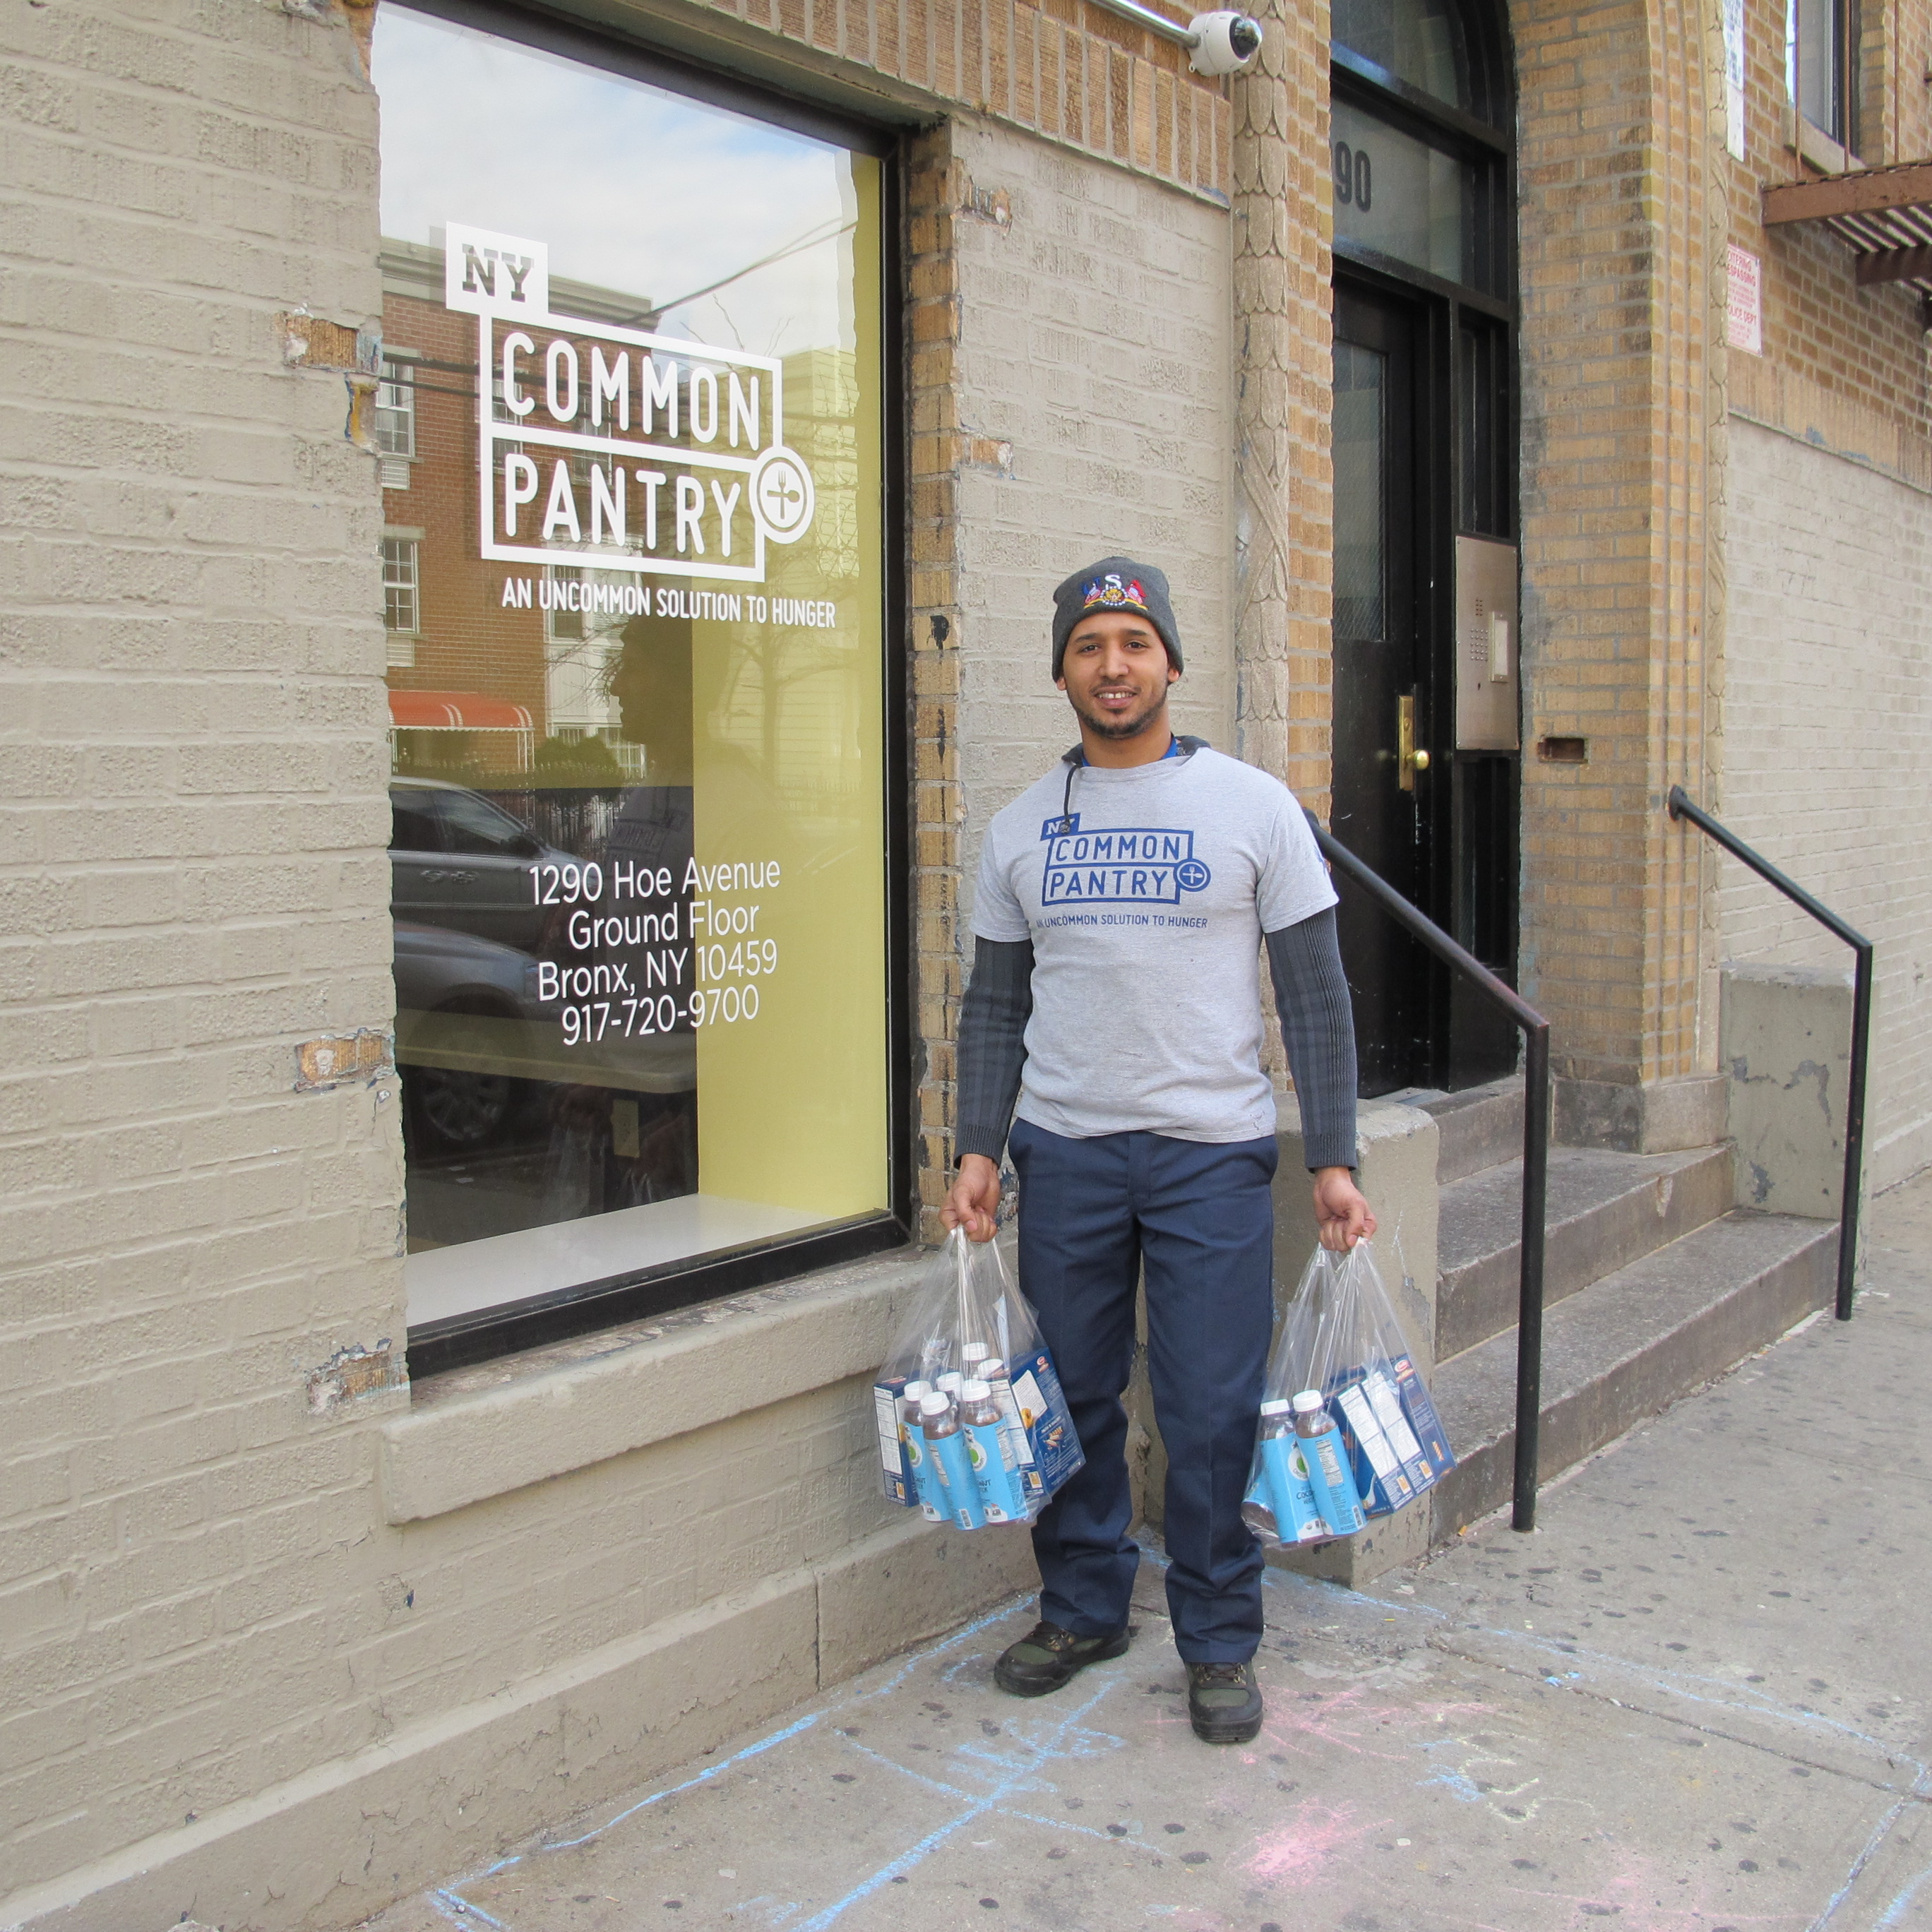 New York Common Pantry Announces The Opening Of A New